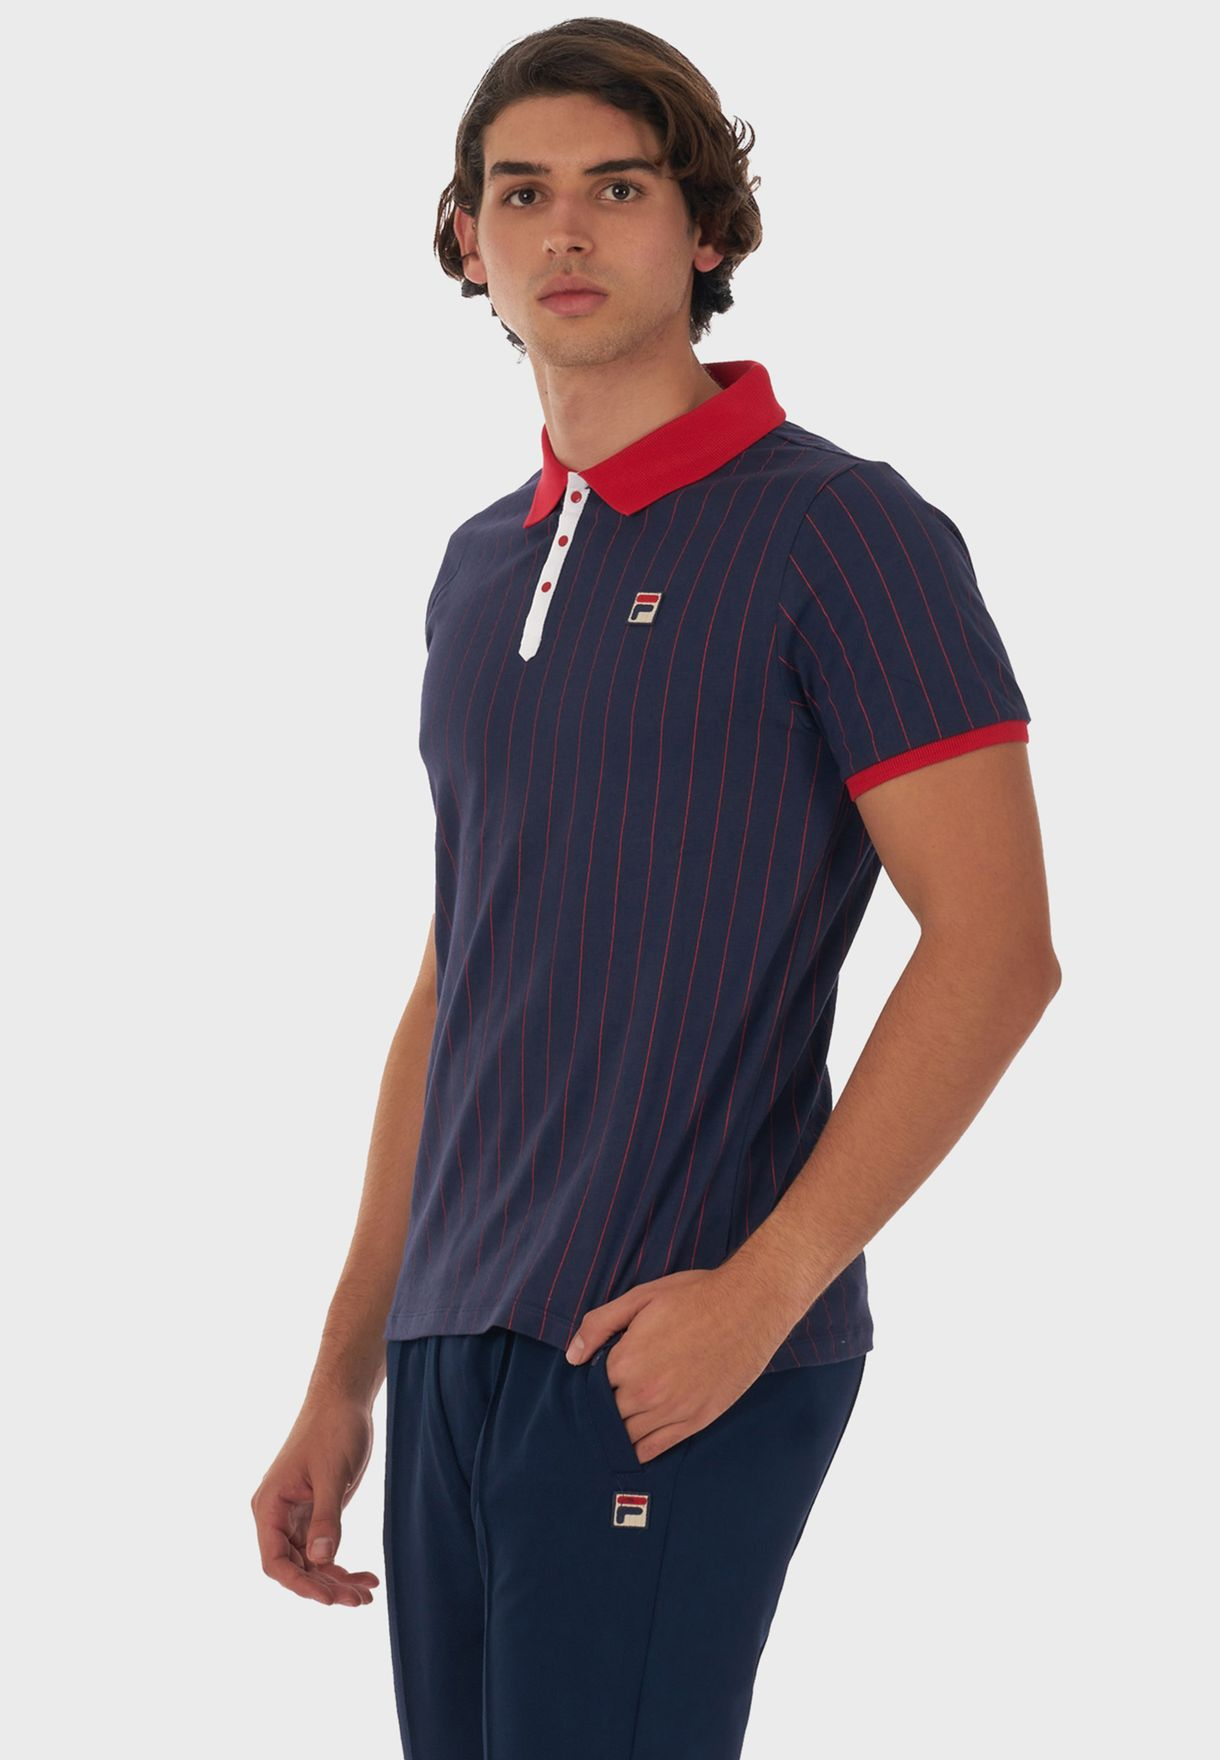 BB1 Classic Vintage Stripped Polo